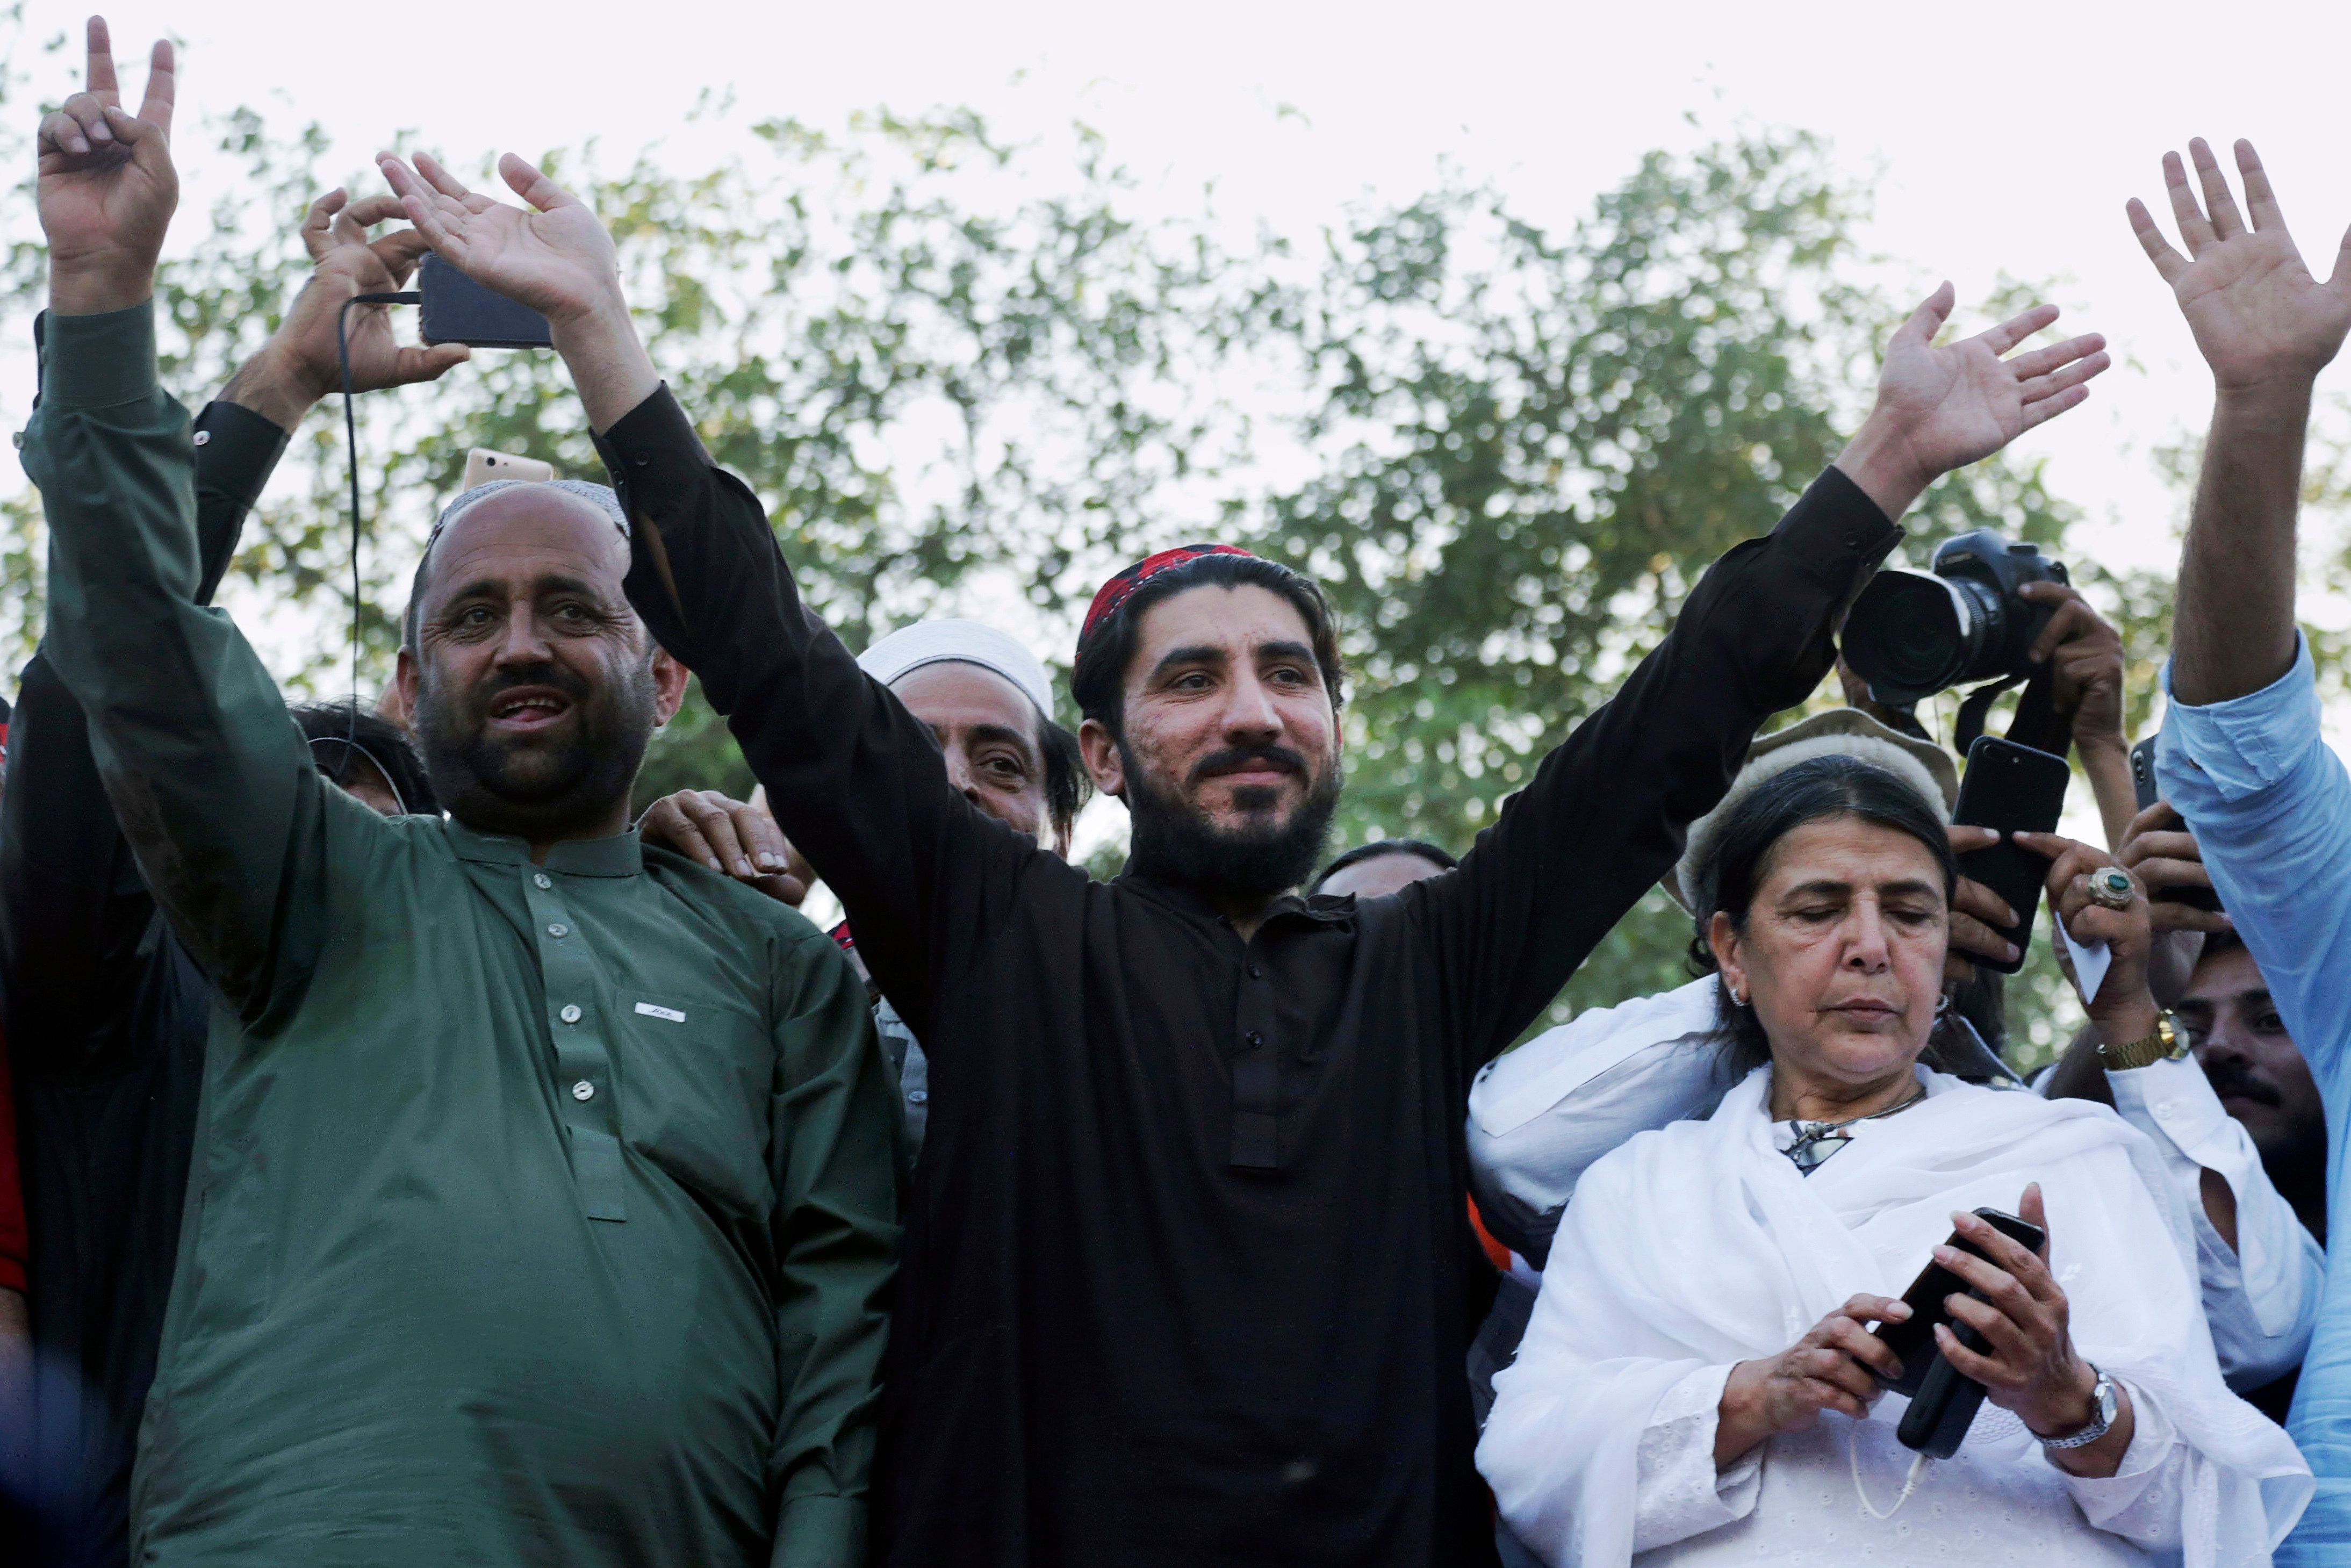 Leader of Pakistani Rights Movement Is Arrested on